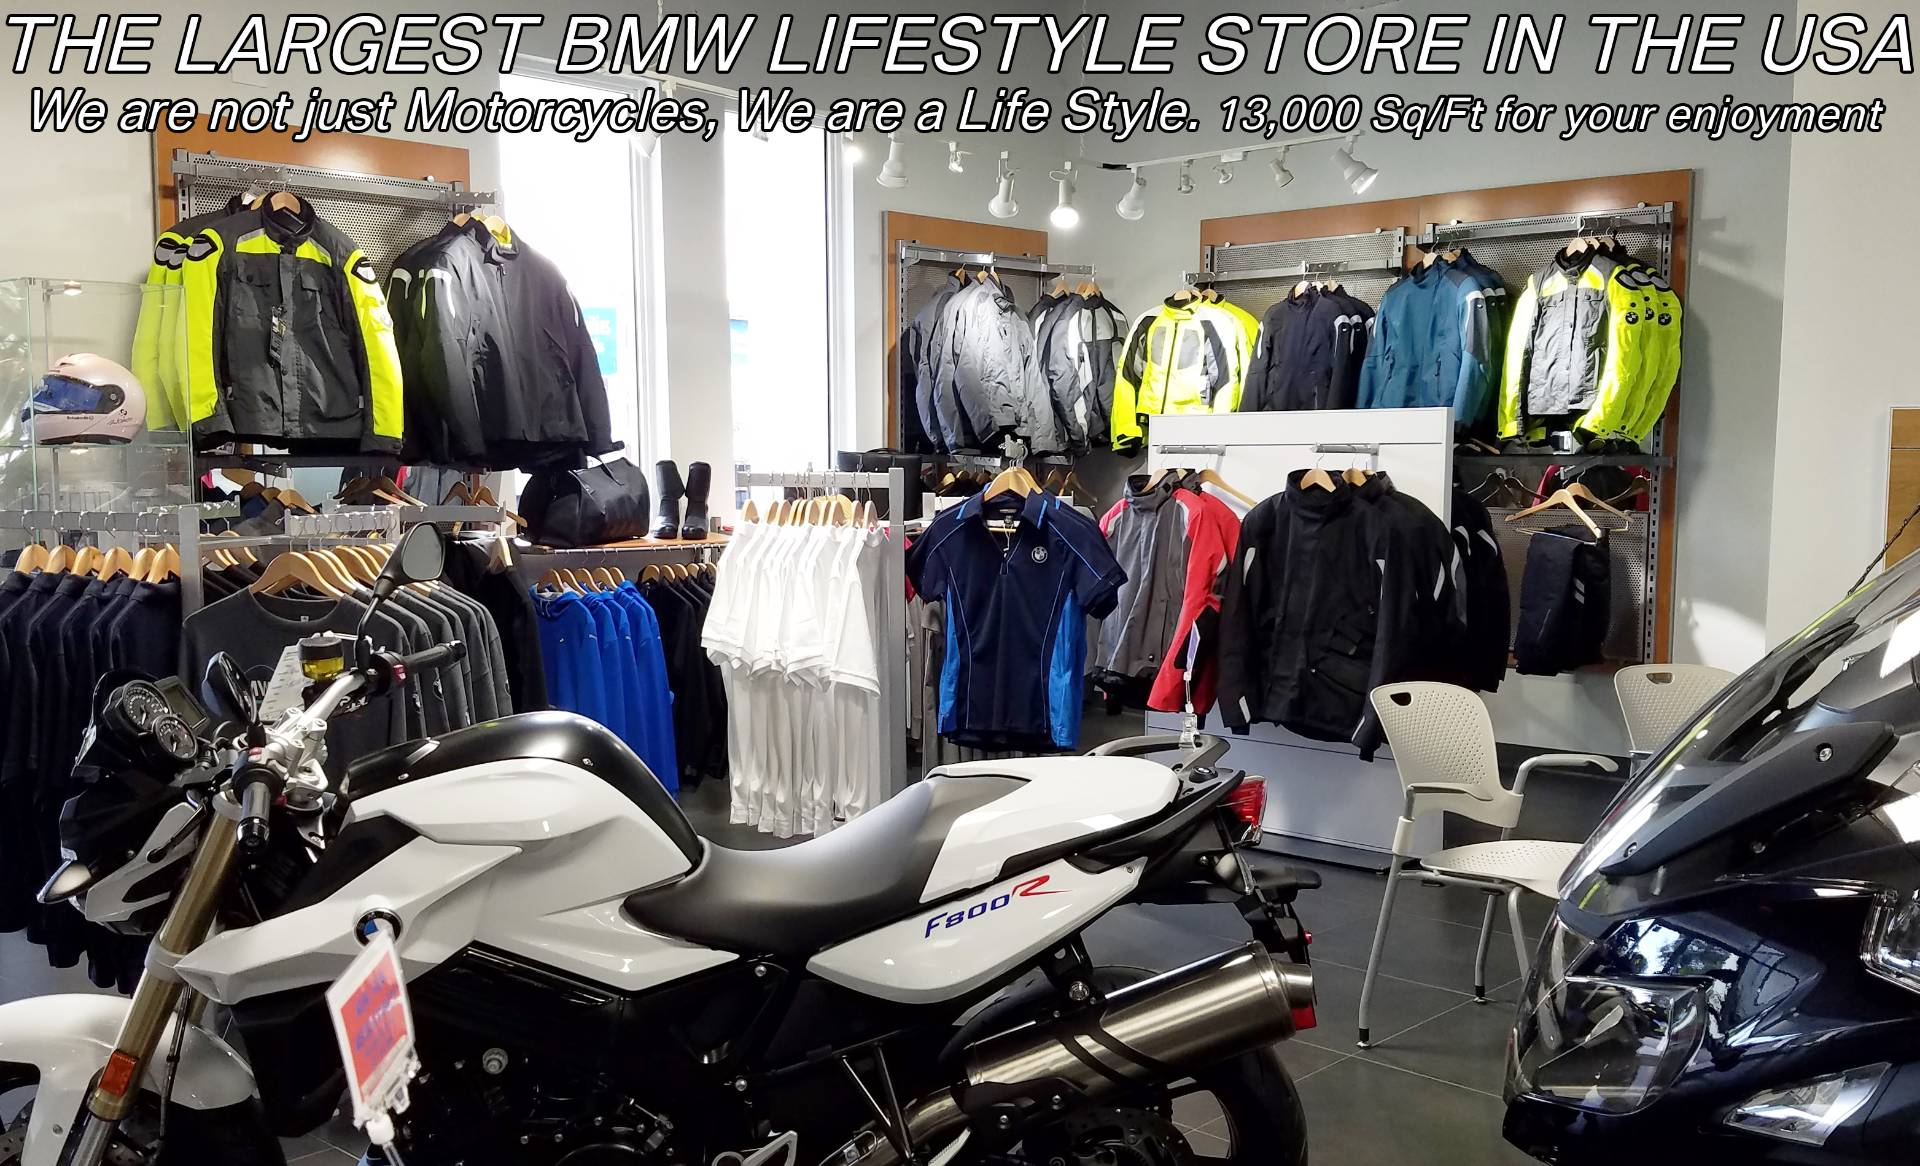 BMW Motorcycles of Miami, Motorcycles of Miami, Motorcycles Miami, New Motorcycles, Used Motorcycles, pre-owned. #BMWMotorcyclesOfMiami #MotorcyclesOfMiami. - Photo 16